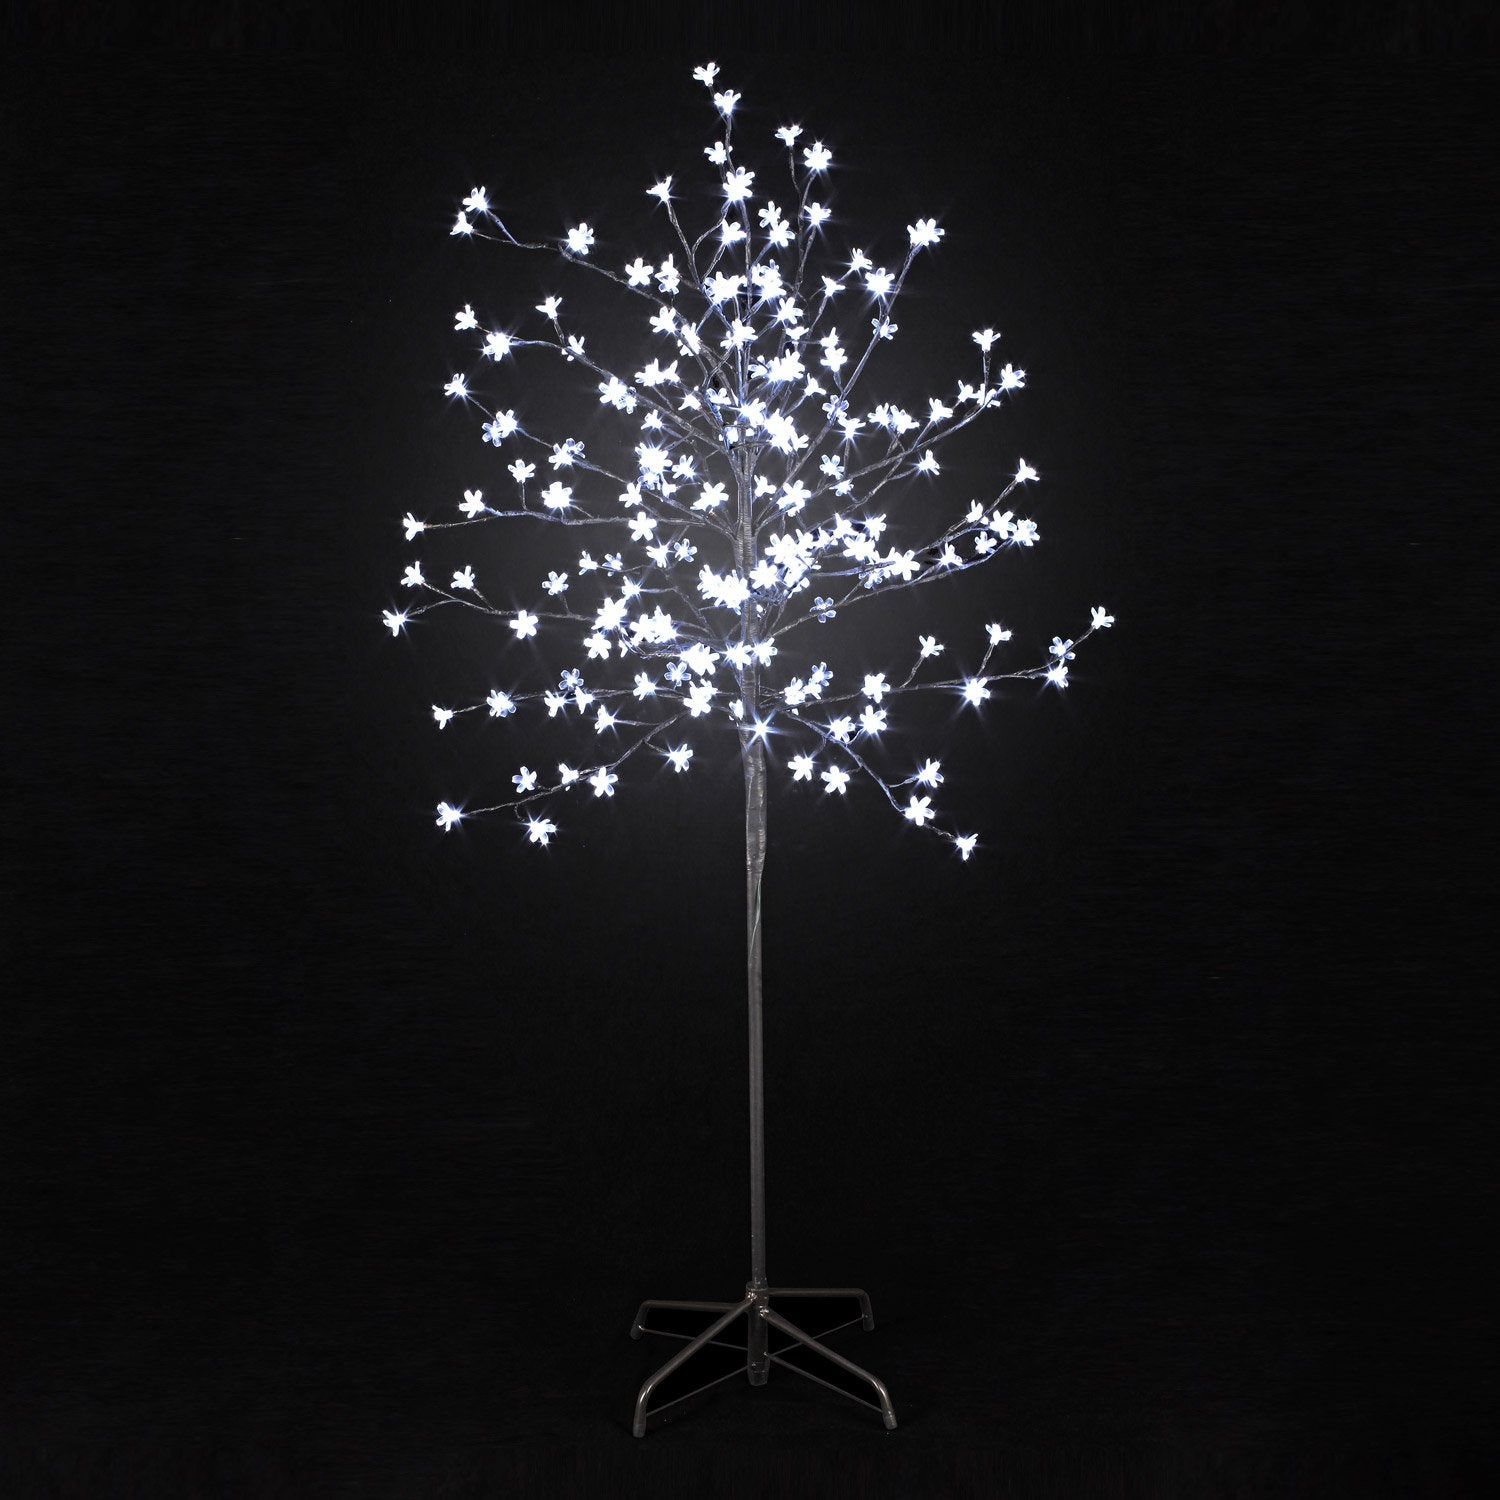 Arbre lumineux ext rieur prunus led int gr e 12 w blanc leroy merlin for Pots lumineux leroy merlin